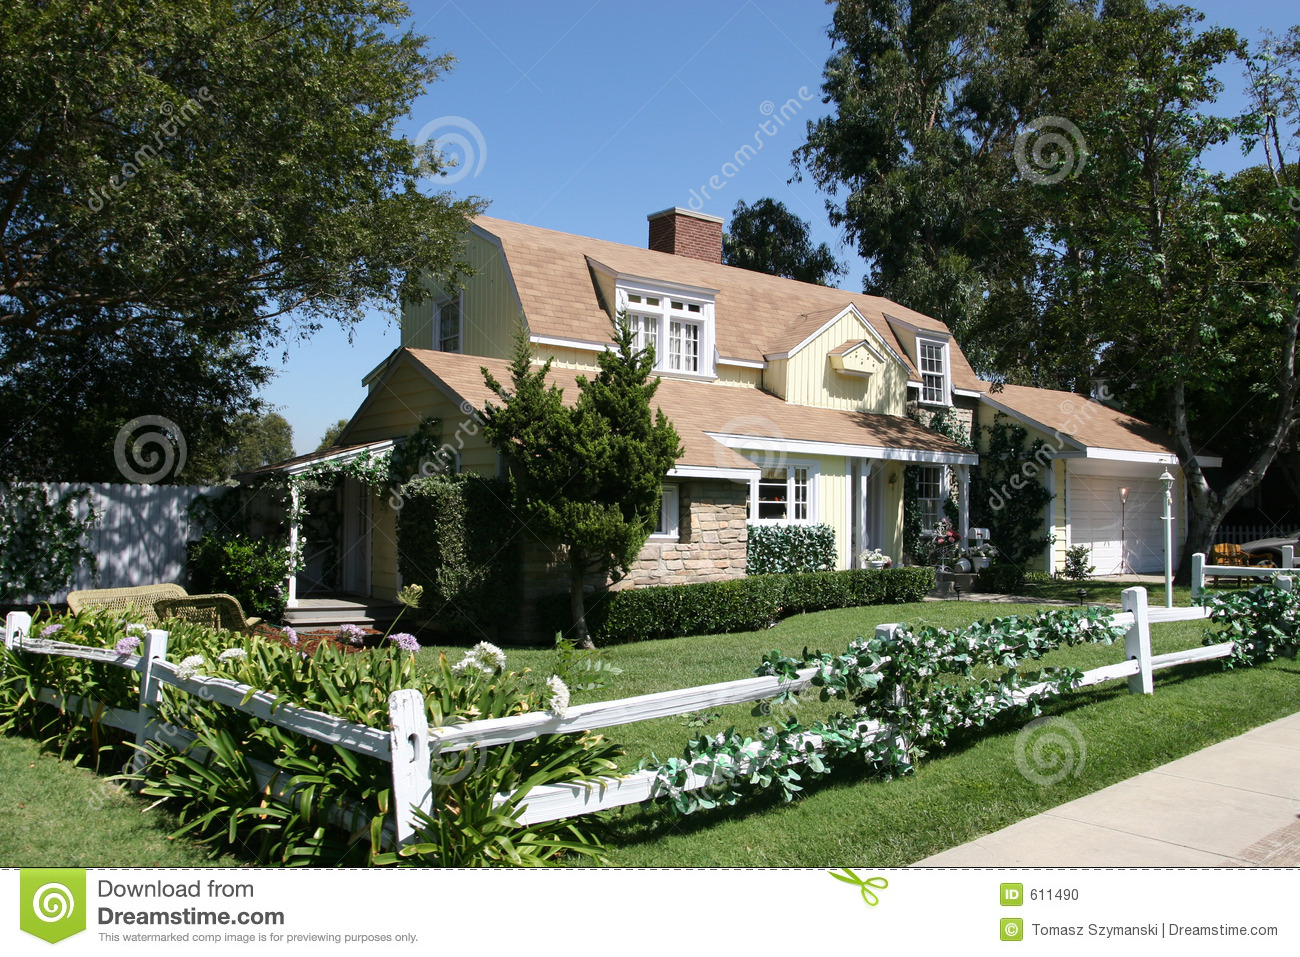 American style house stock photo image of blue for Americana style house